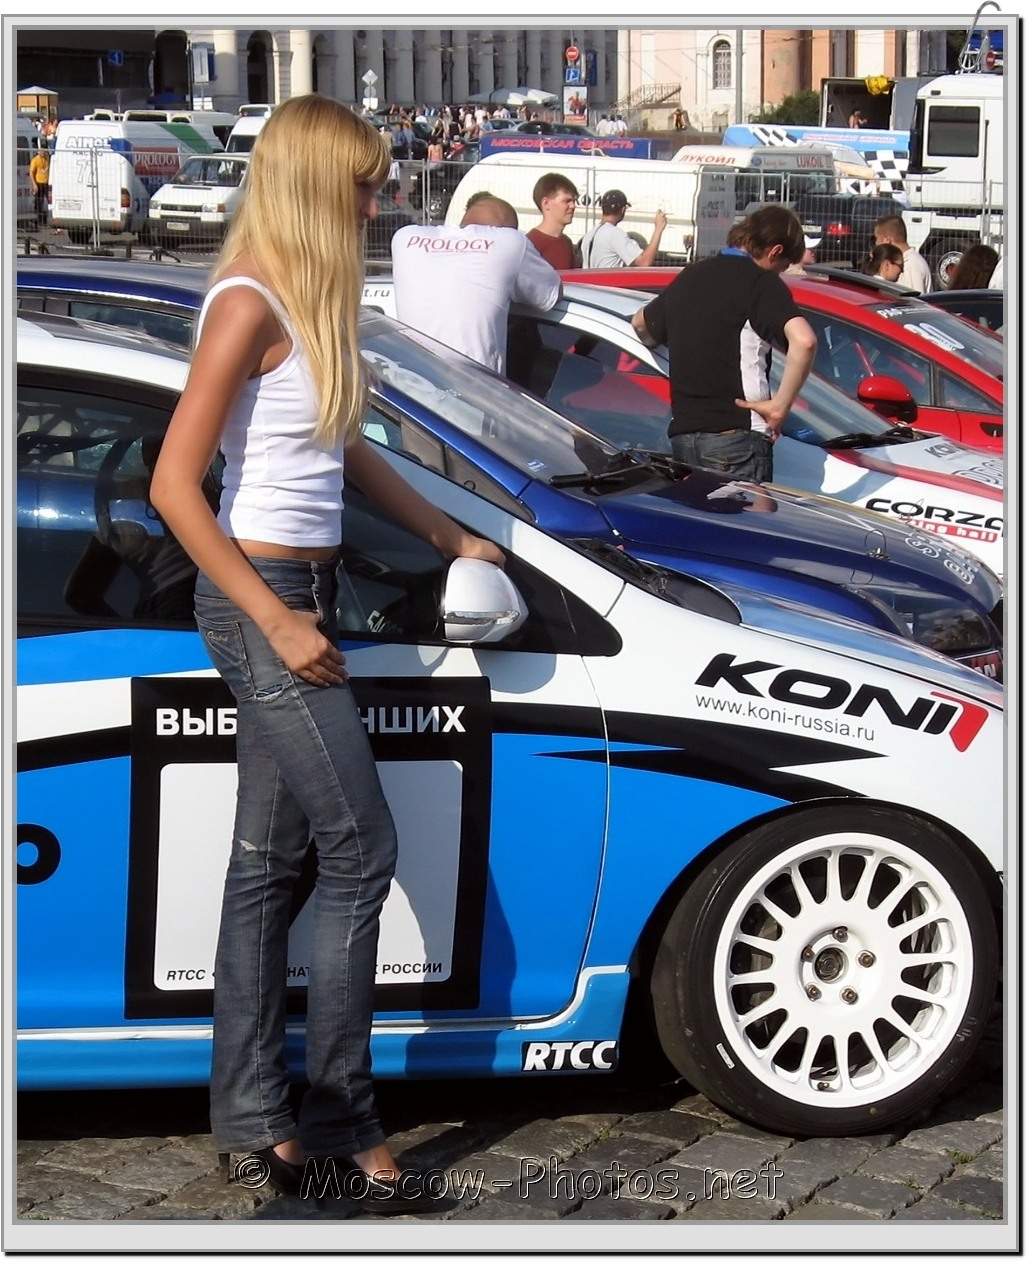 Sexy Girl and Car - Bavaria Moscow City Racing 2008